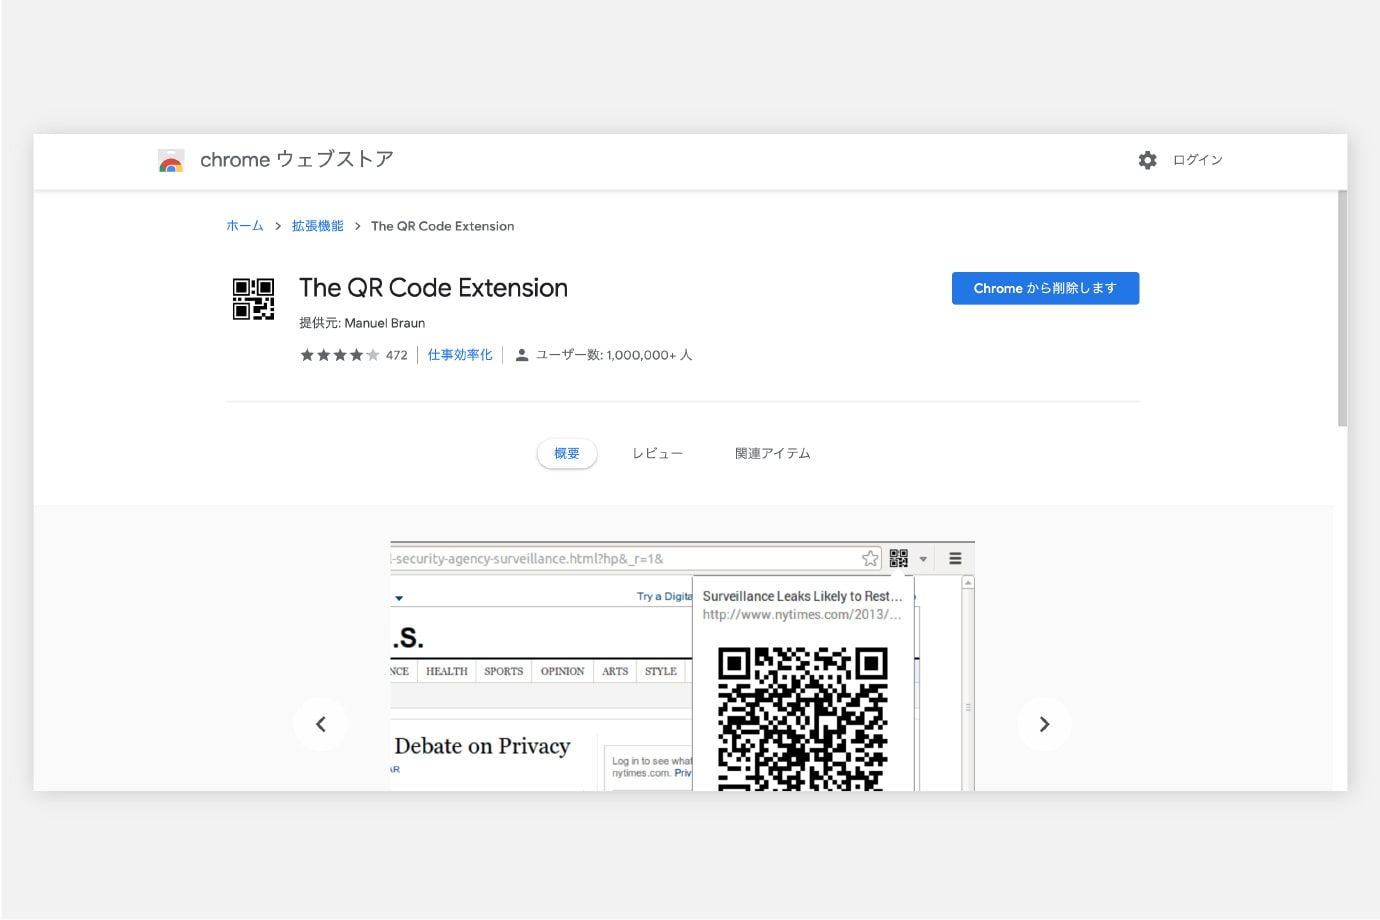 The QR Code Extension Chromeダウンロード画面